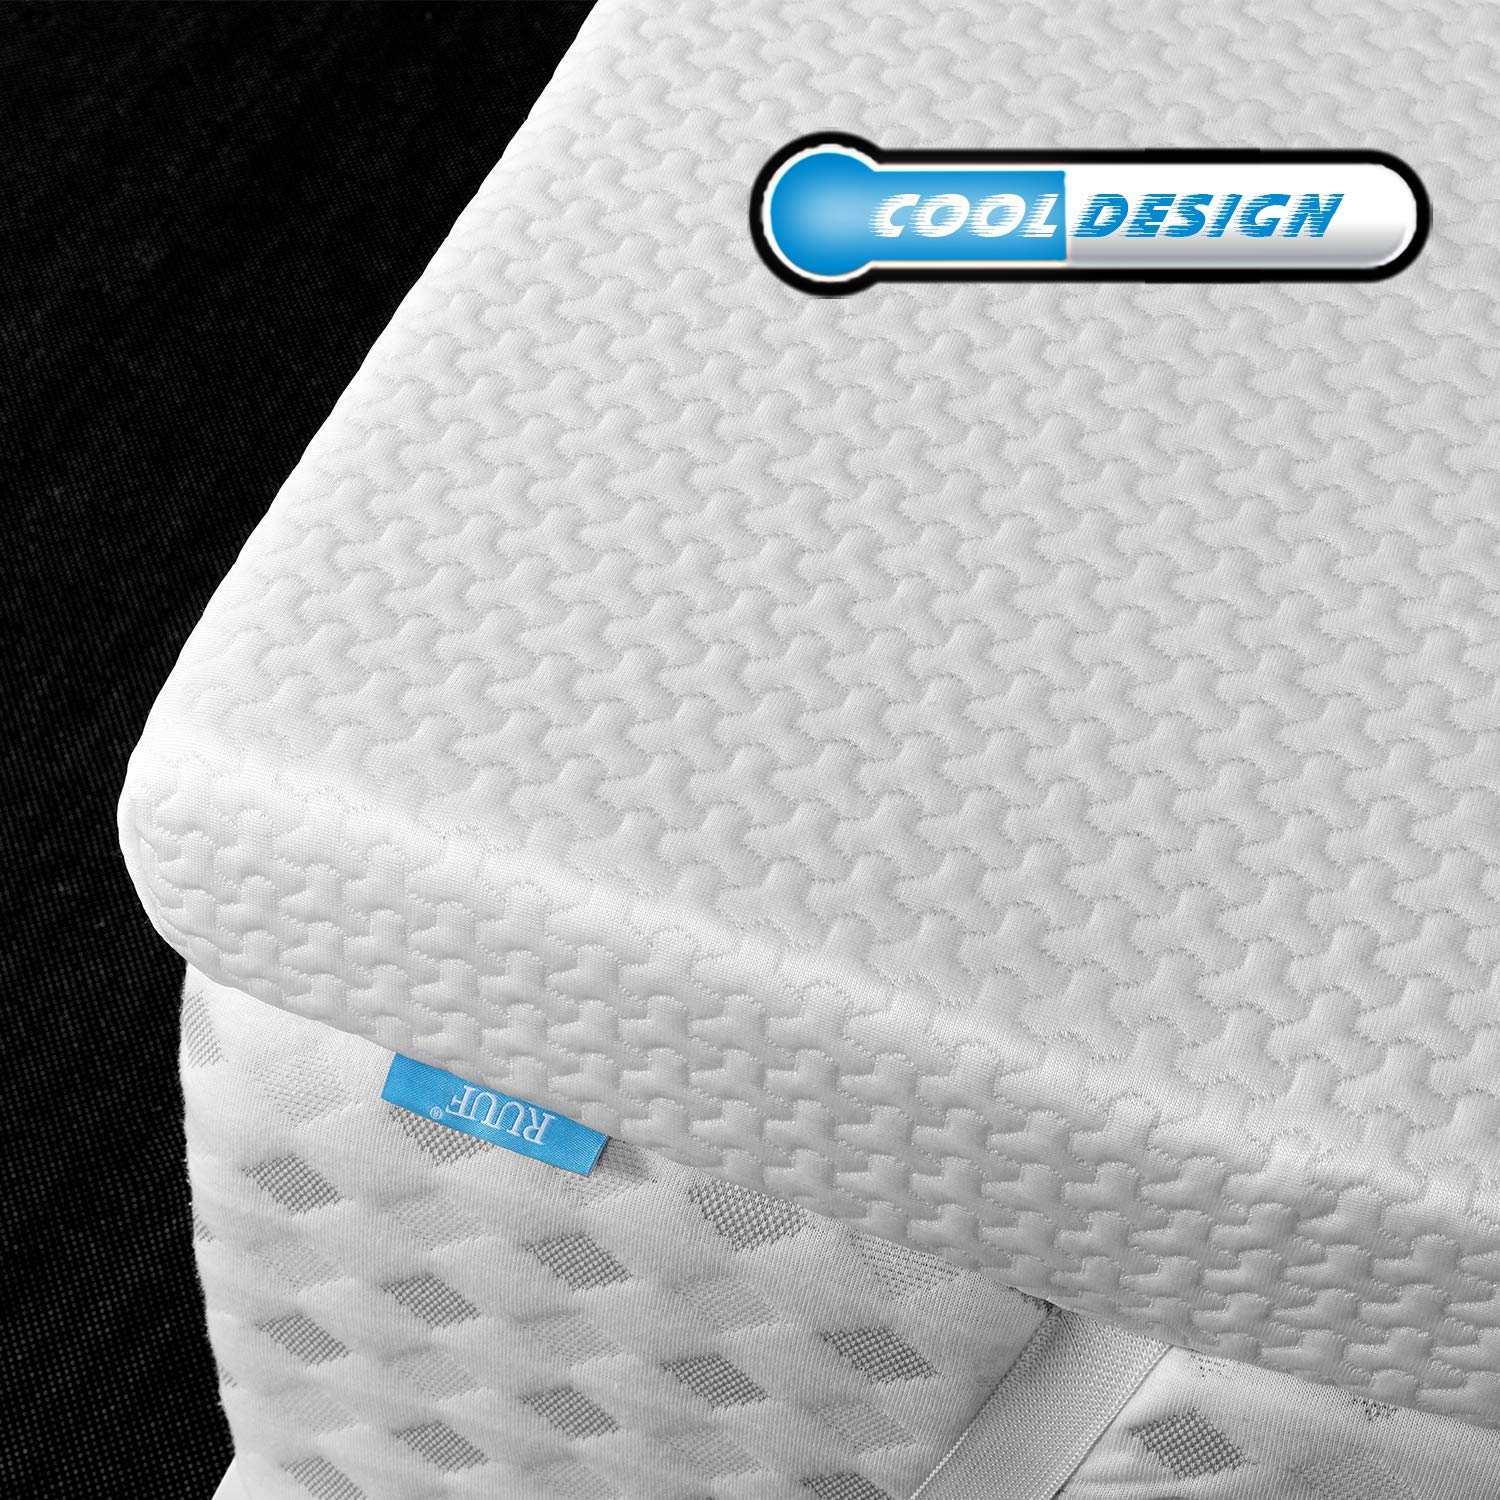 RUUF Memory Foam Mattress Topper King | 2-Inch High Density Active Cooling Bed Topper | Removable & Washable Hypoallergenic Cover | Medium-Firm